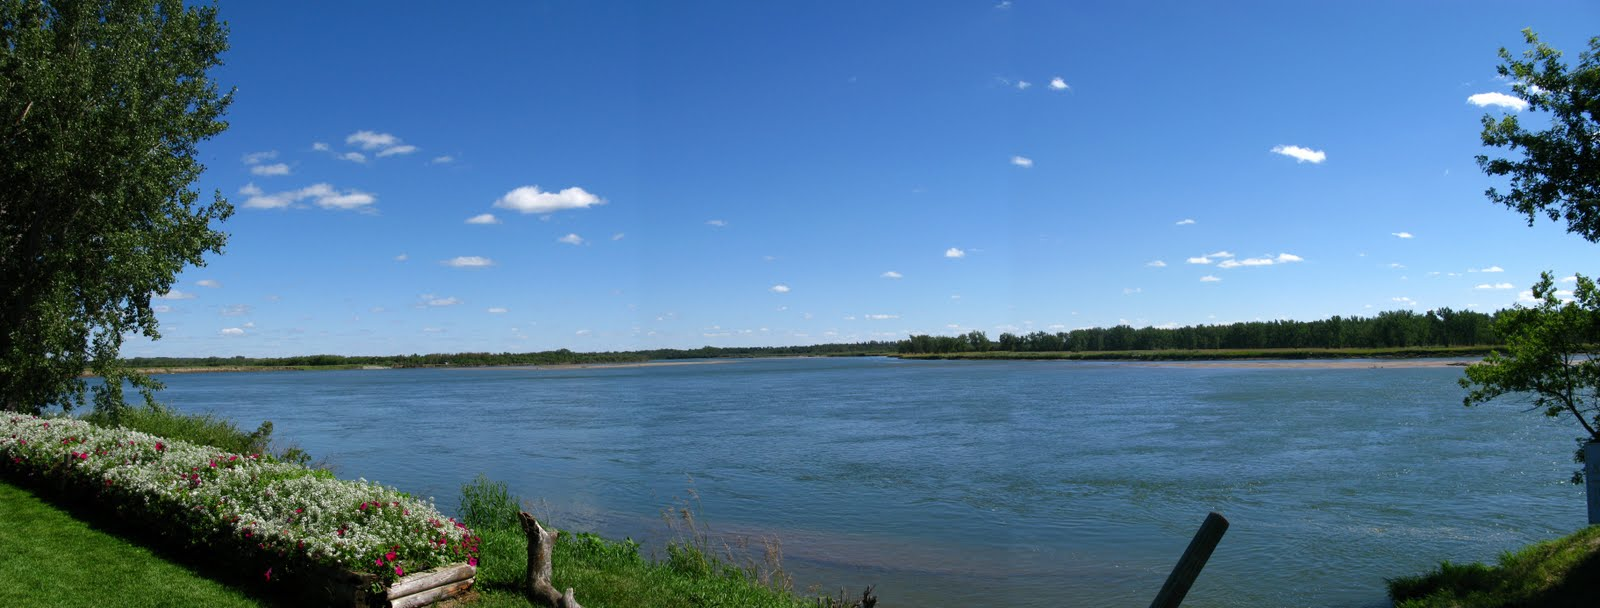 Sourth Sask River at Berry Farm